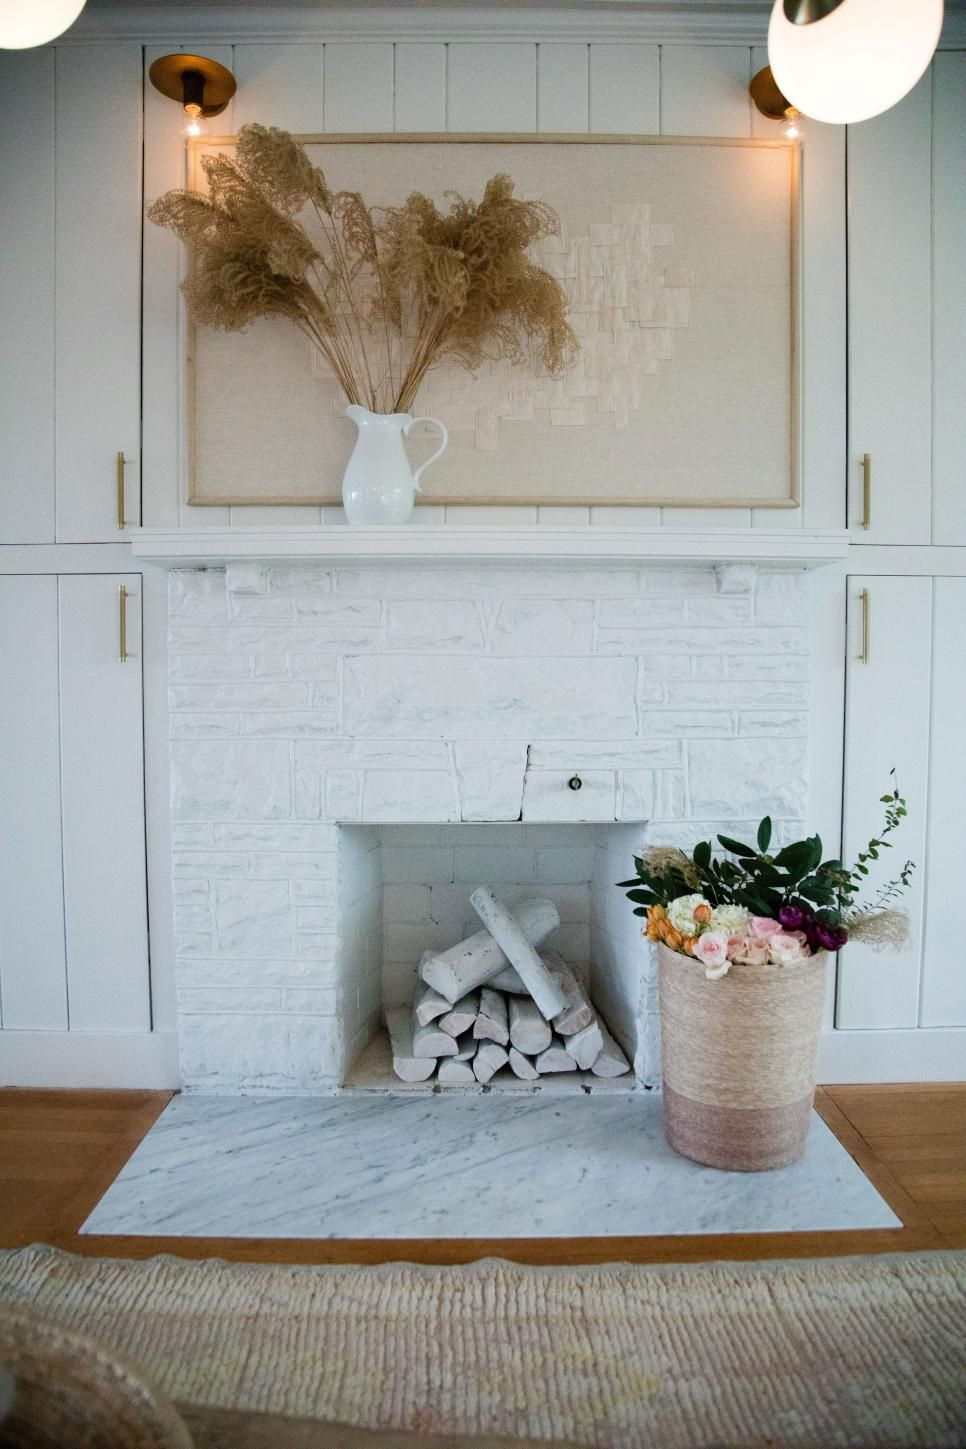 20 Ways Leanne Ford Got Creative with White